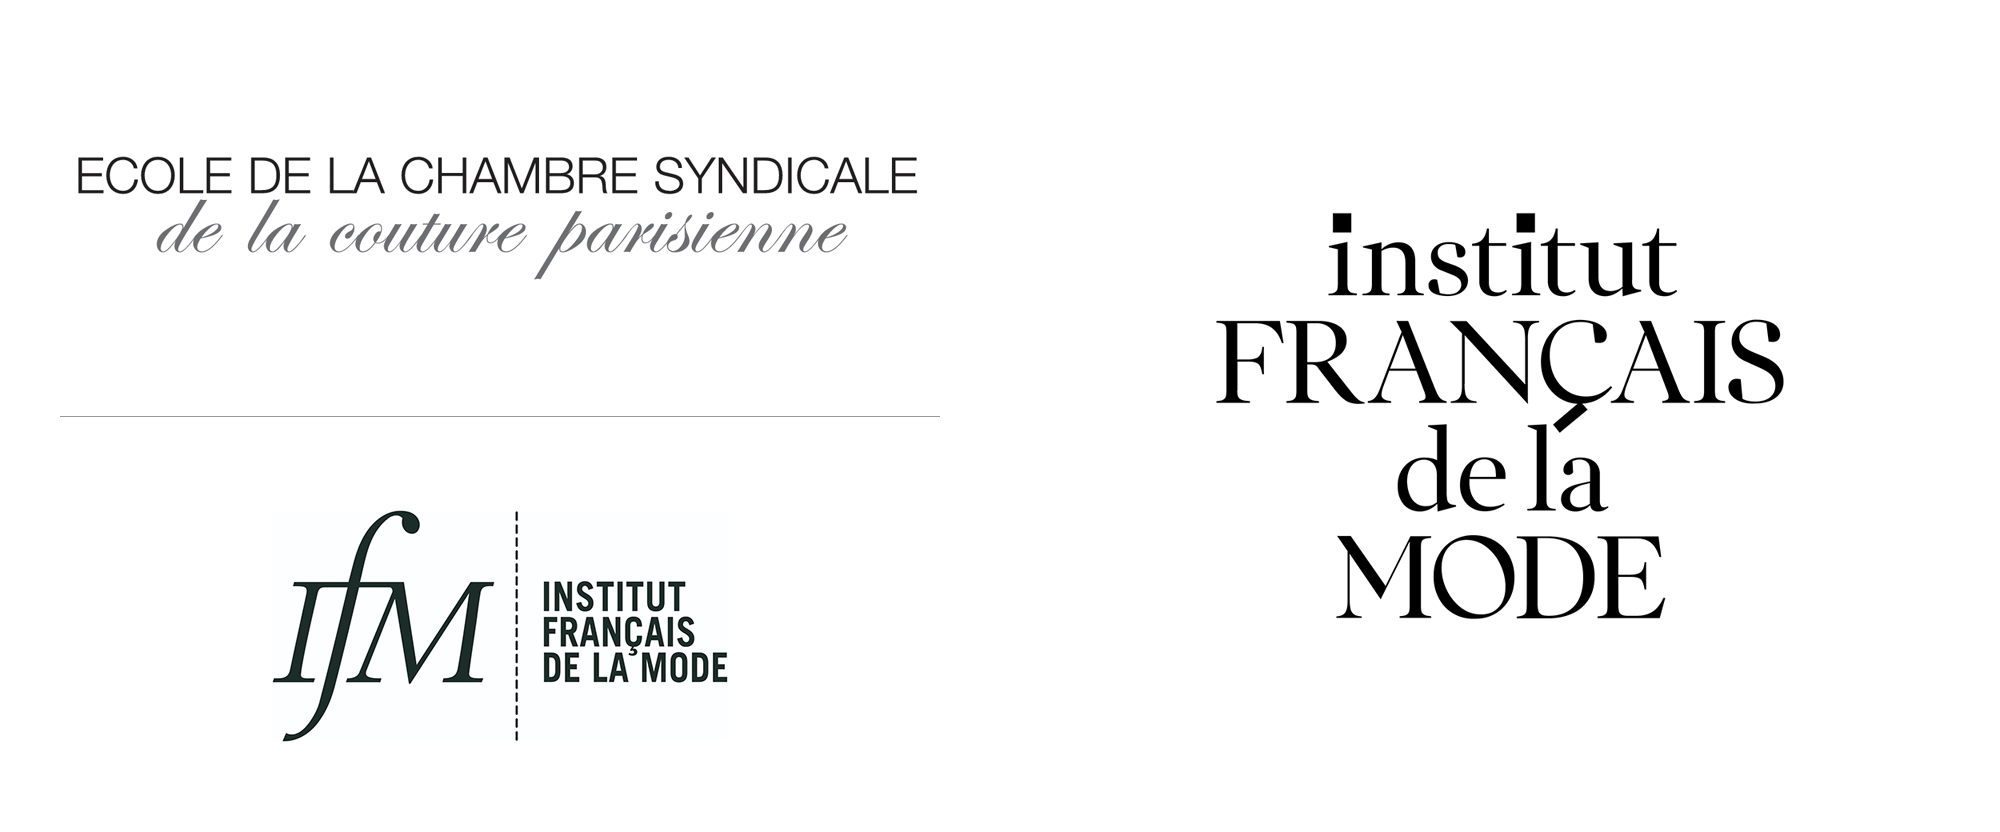 Ecole De La Chambre Syndicale Reviewed New Logo And Identity For Institut Français De